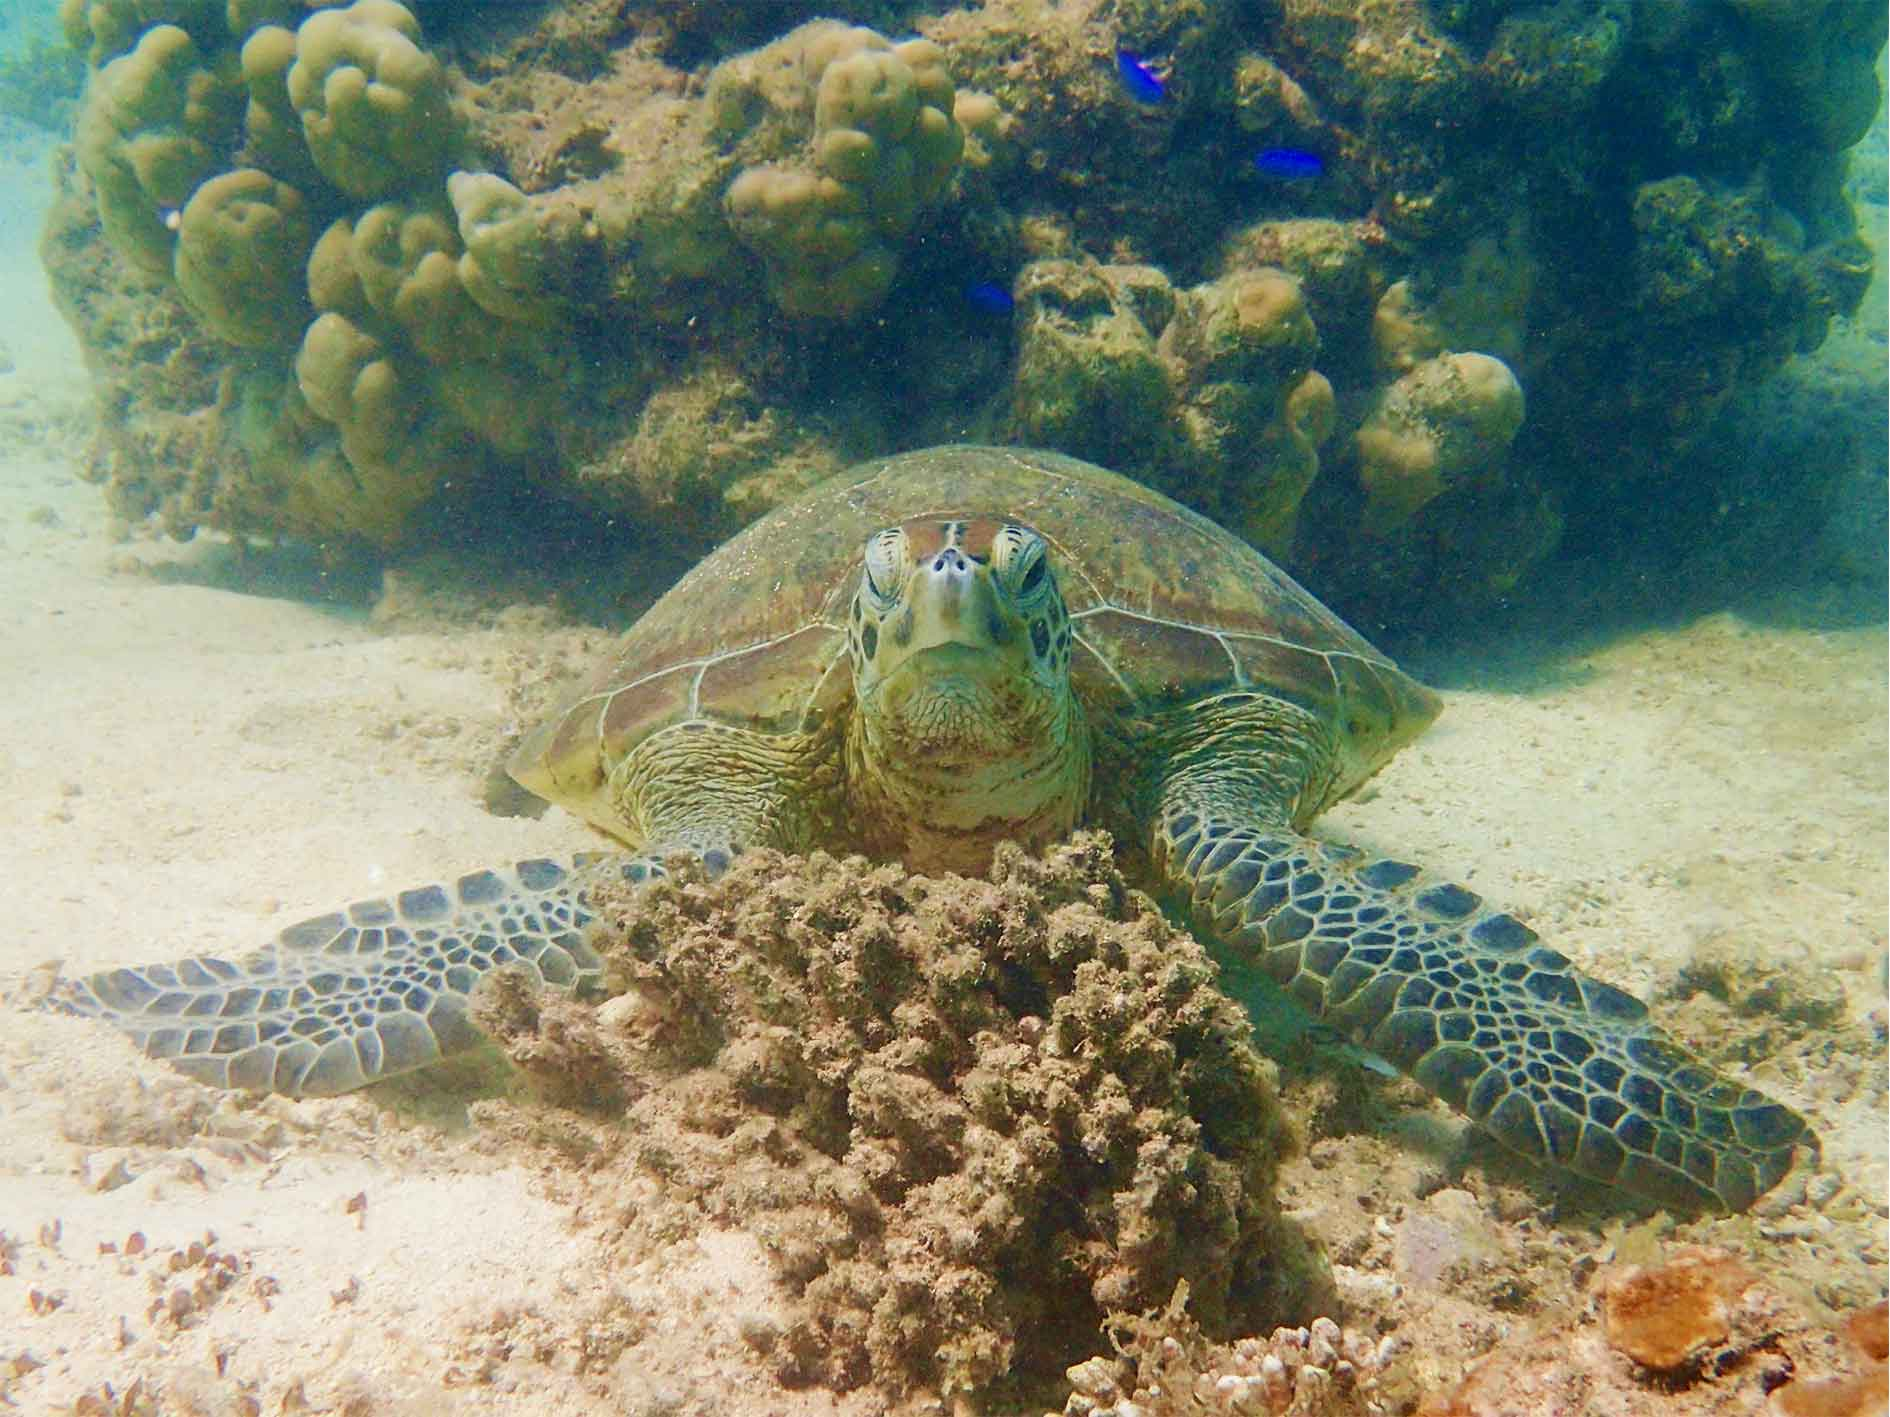 Turtle Tour, Sea kayak, Snorkel, Bundegi, Sanctuary Zone, eco tour, Exmouth, Western Australia, Ningaloo Reef